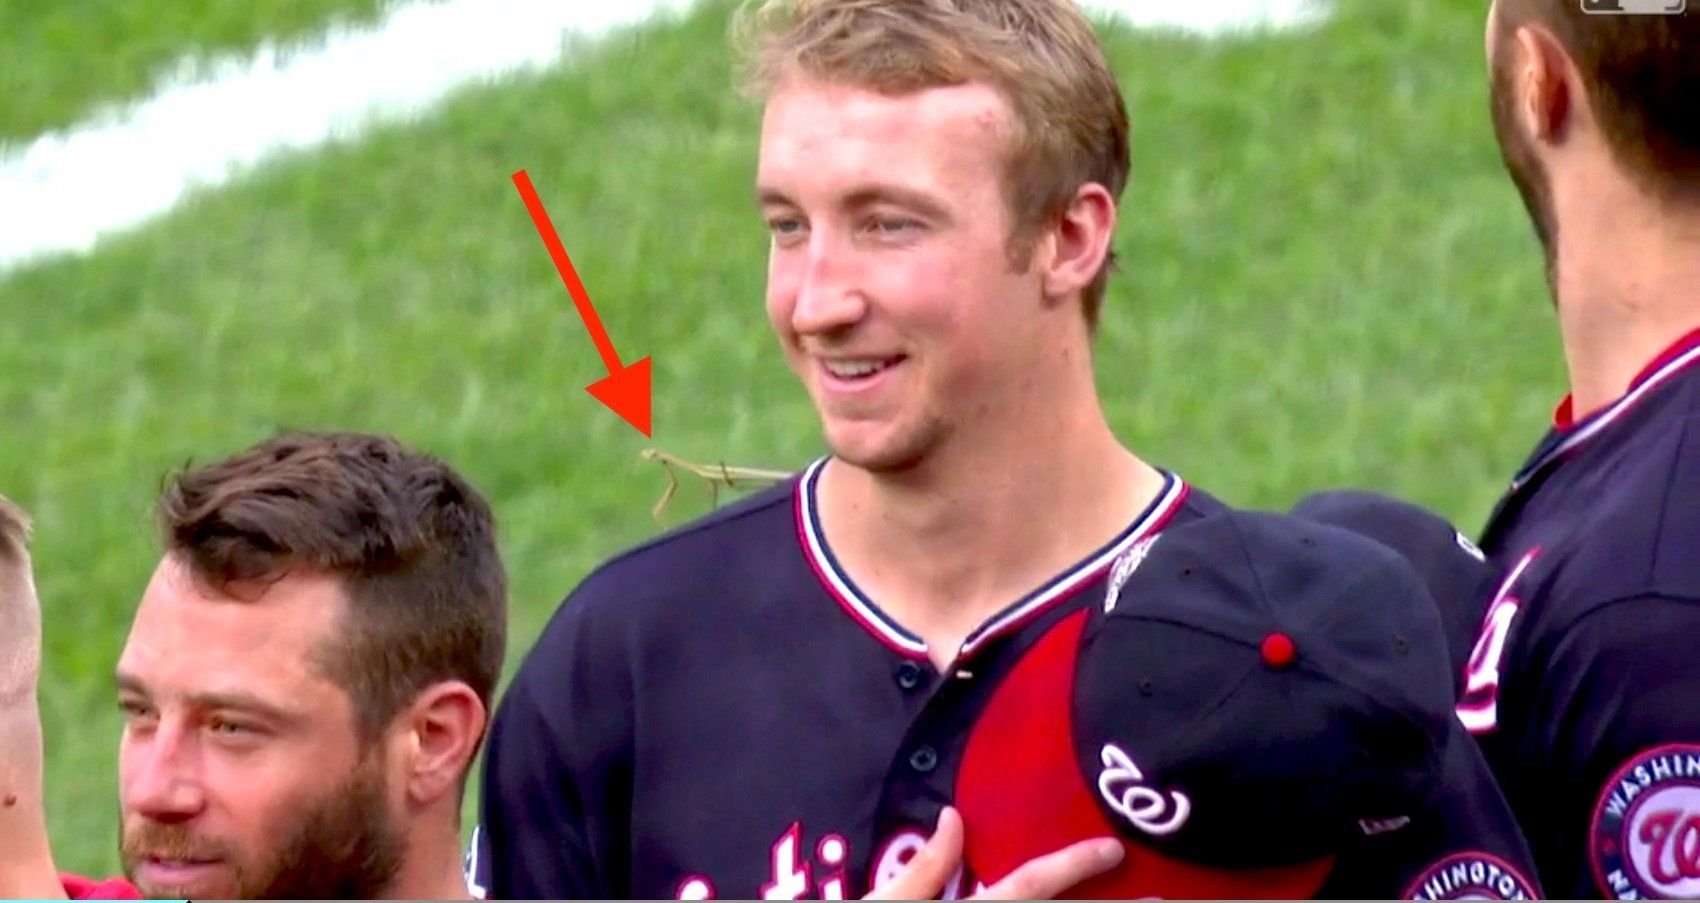 Giant Bug Lands On MLB Pitcher During Anthem. His Response Is